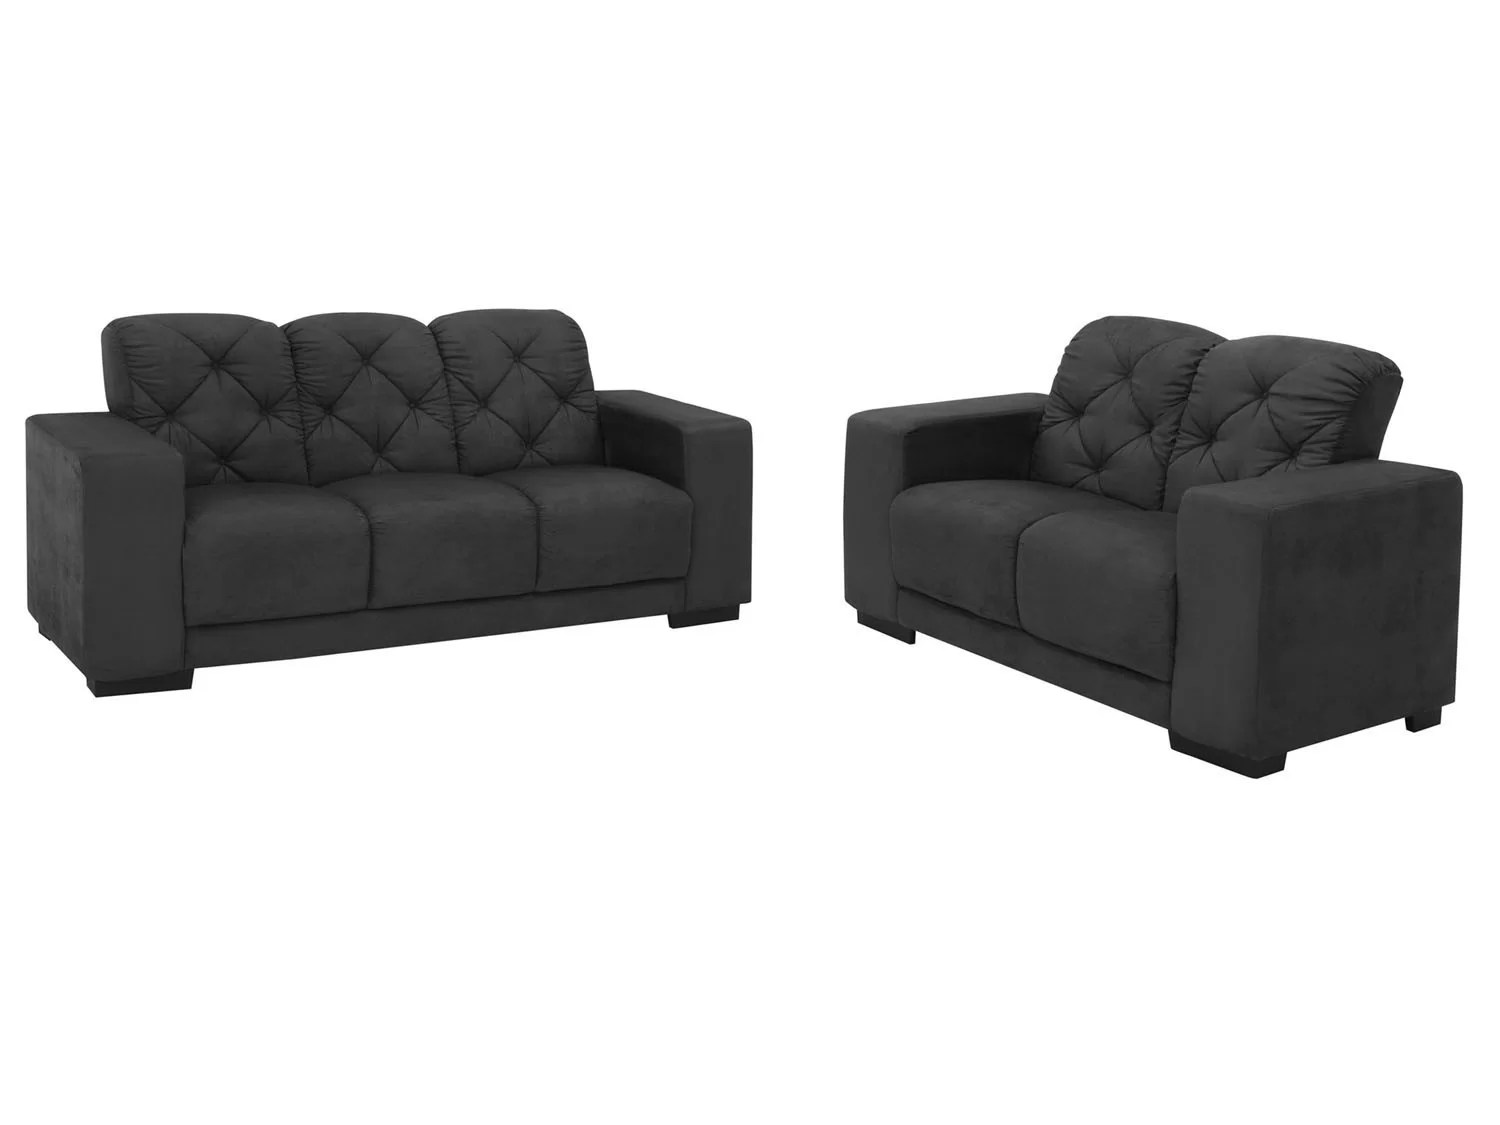 Sofa Retratil E Reclinavel Impermeavel Preview